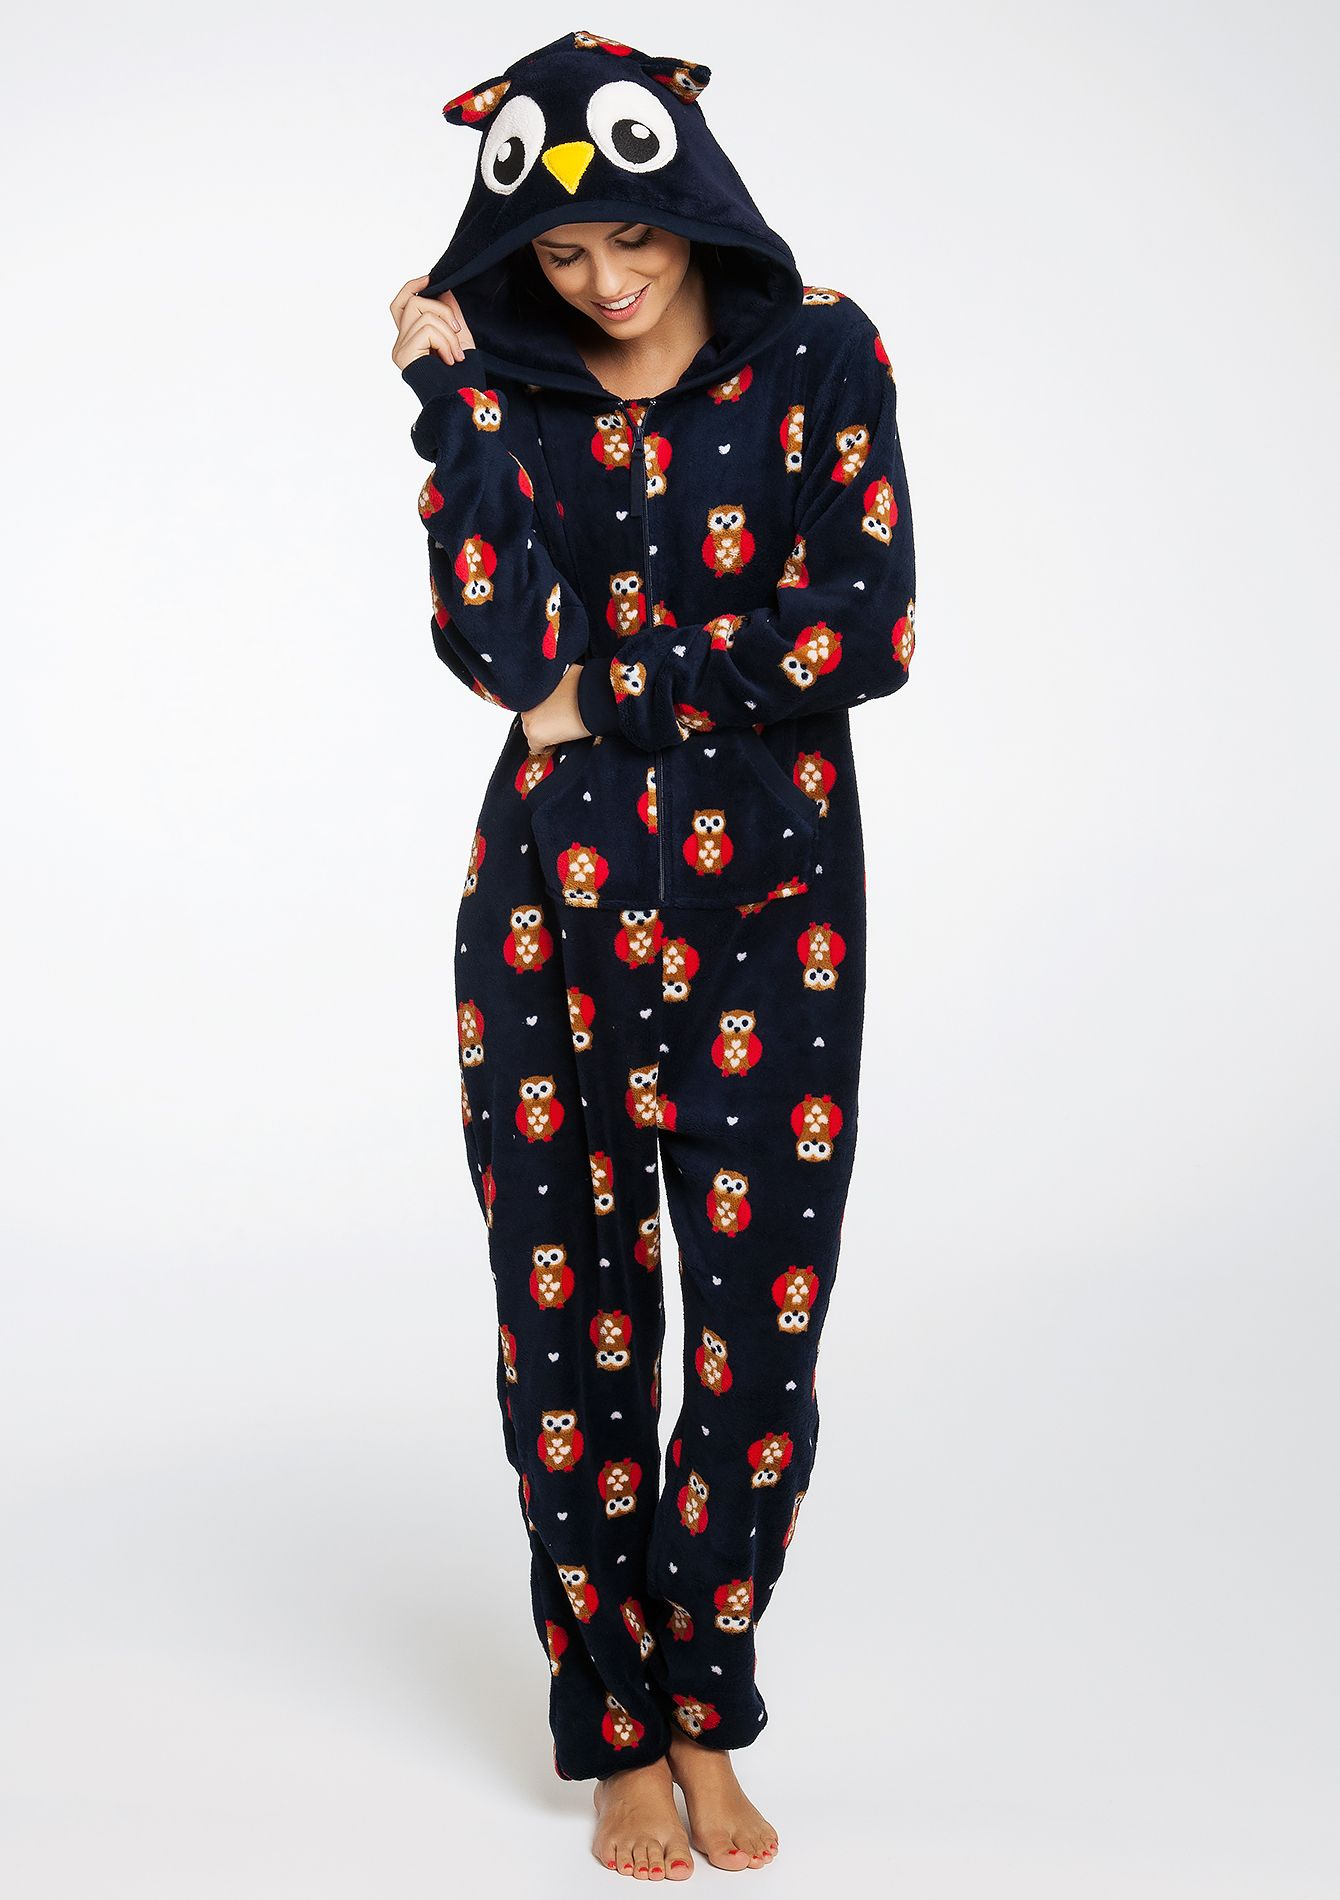 pingl par flora sur v tements en 2018 pinterest pyjama pyjama combinaison et pyjama femme. Black Bedroom Furniture Sets. Home Design Ideas